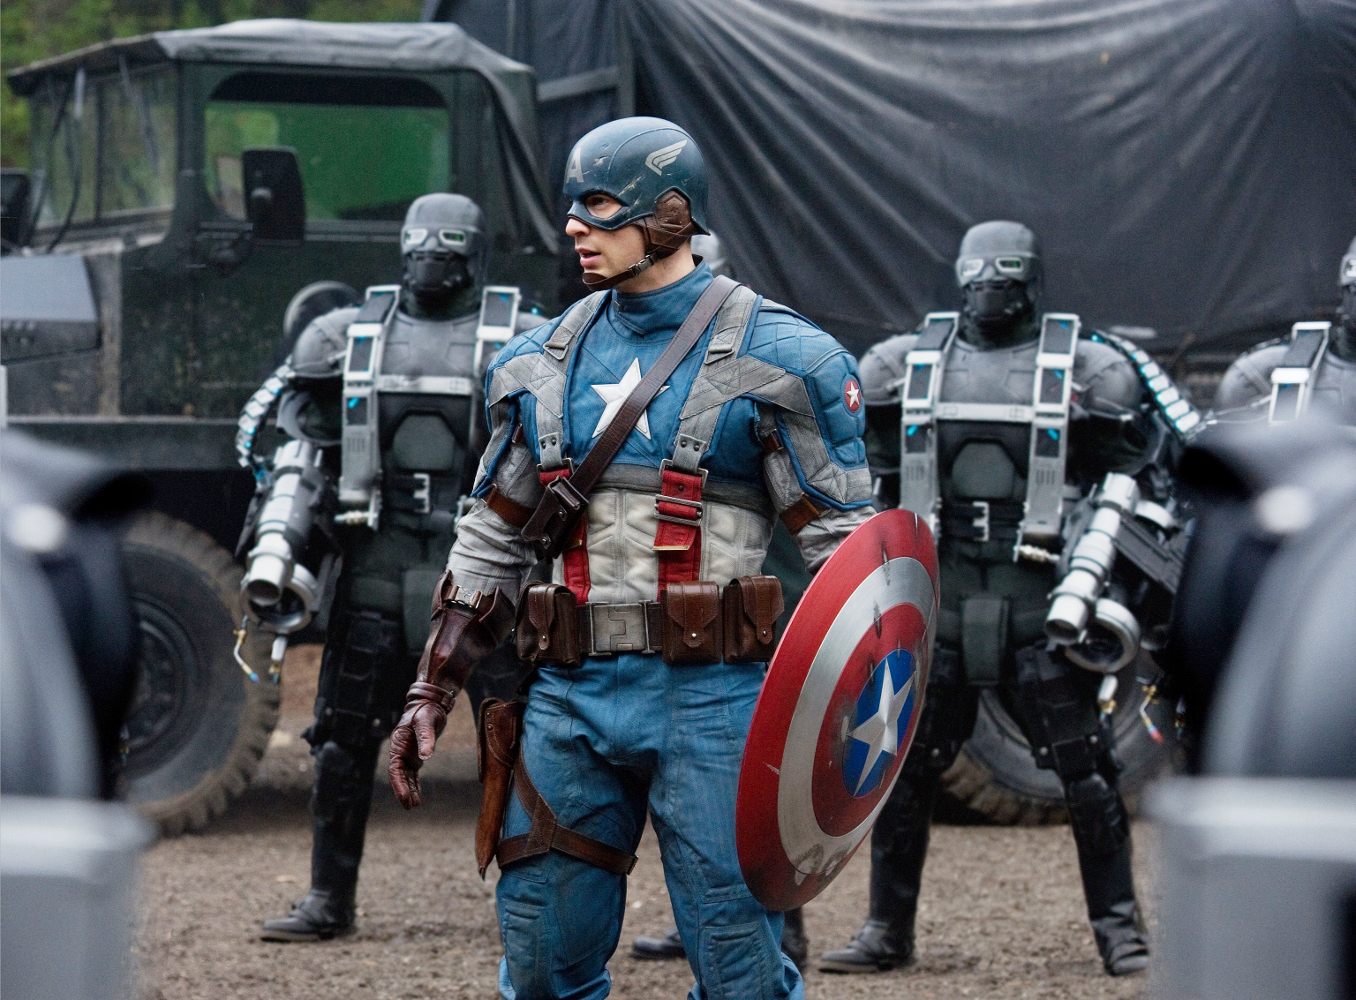 Captain America : An Absolute Blast From a Retro Hero